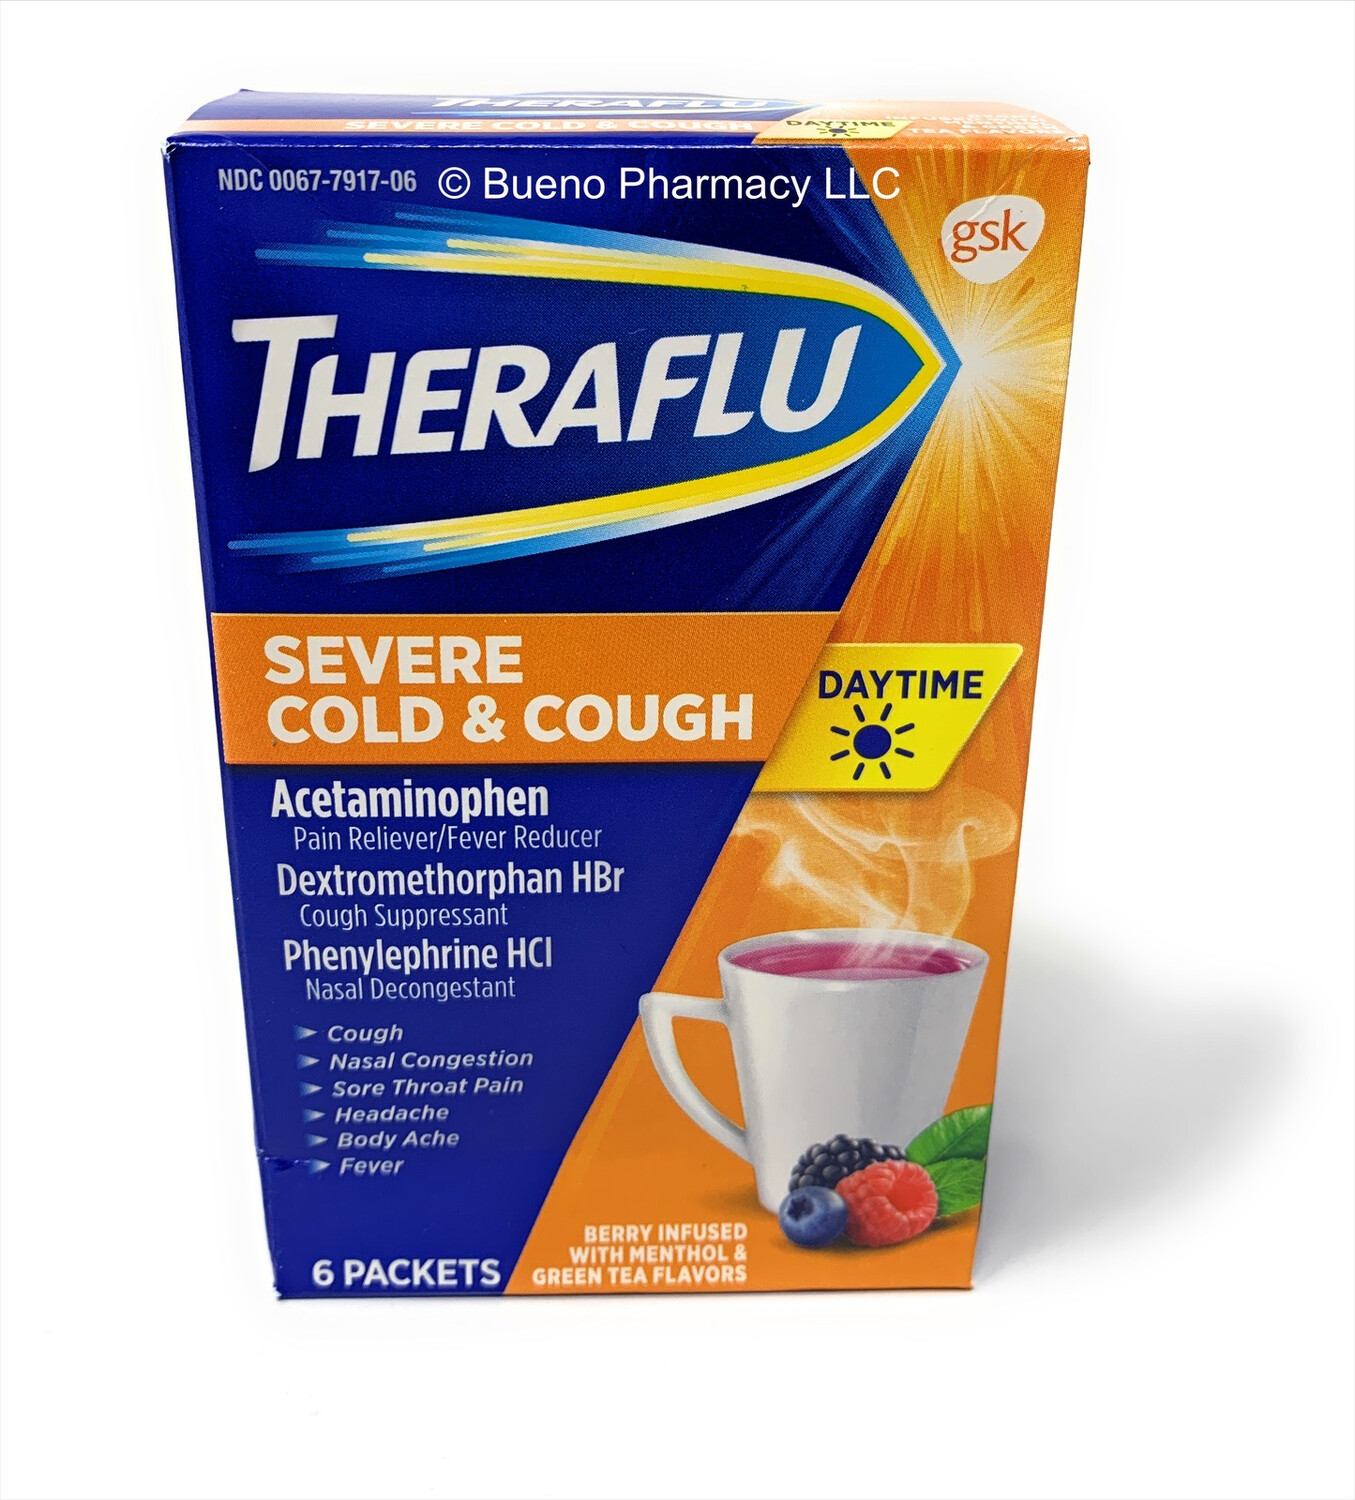 Theraflu Severe Cold & Cough (Daytime)